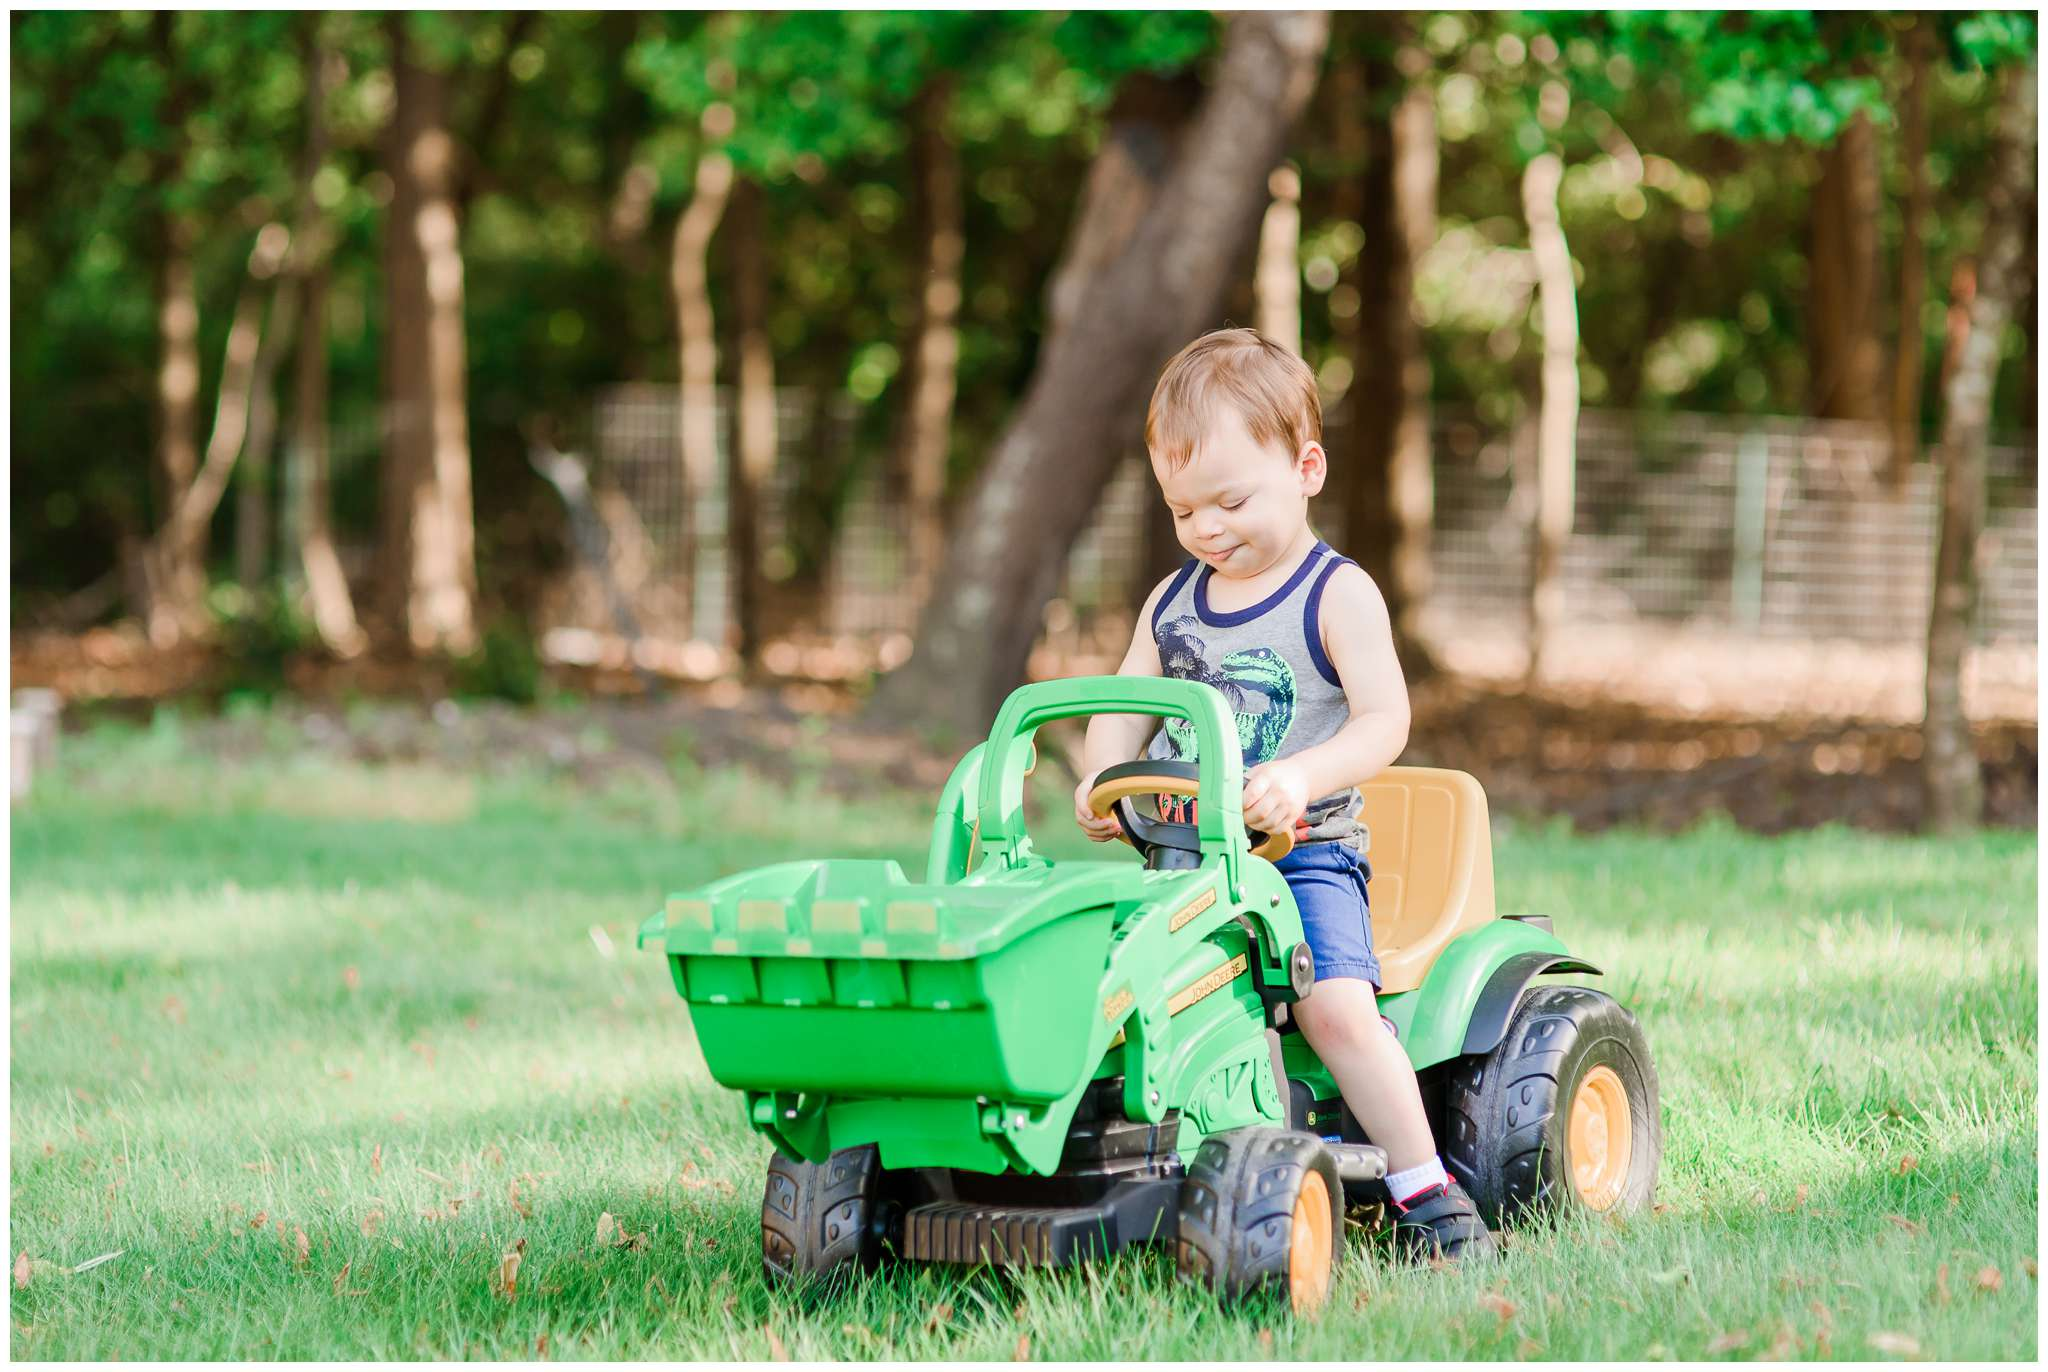 Liam and Tractor_4014.jpg